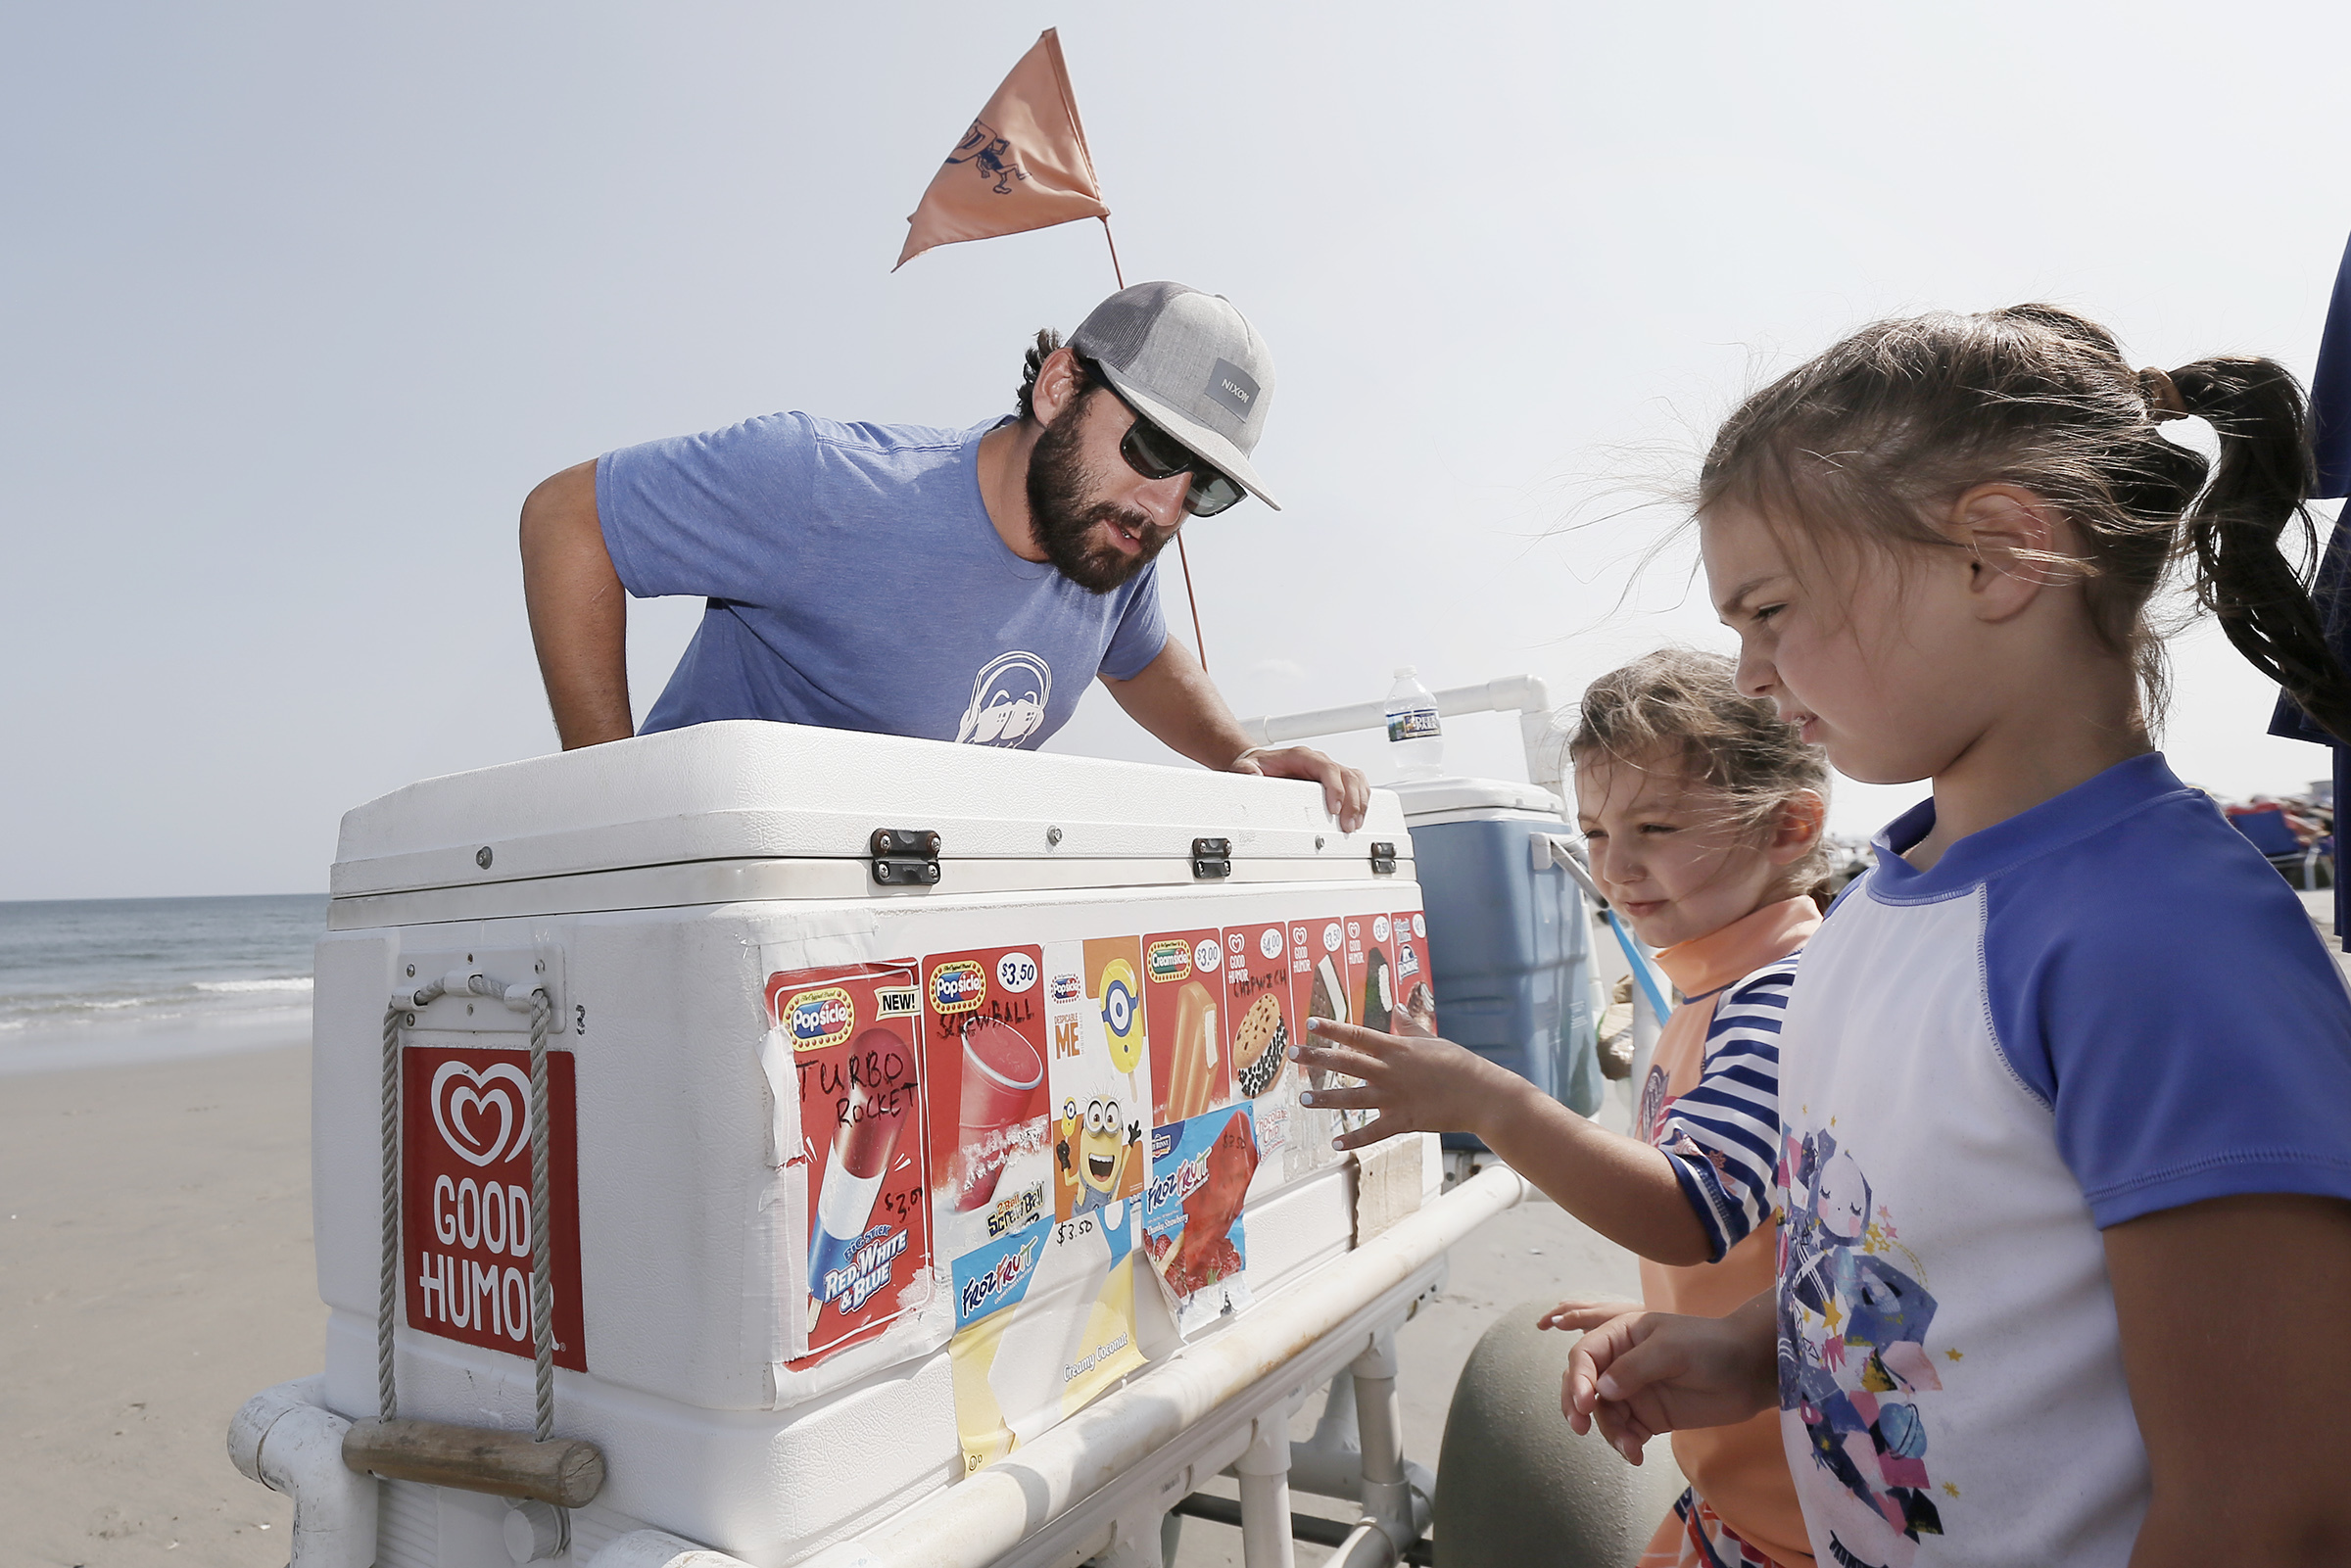 Fudgie Wudgie Ryan McNesby helps Madeline Colella, 5, (middle) and her sister Cecelia Colella, 3, make their selections.